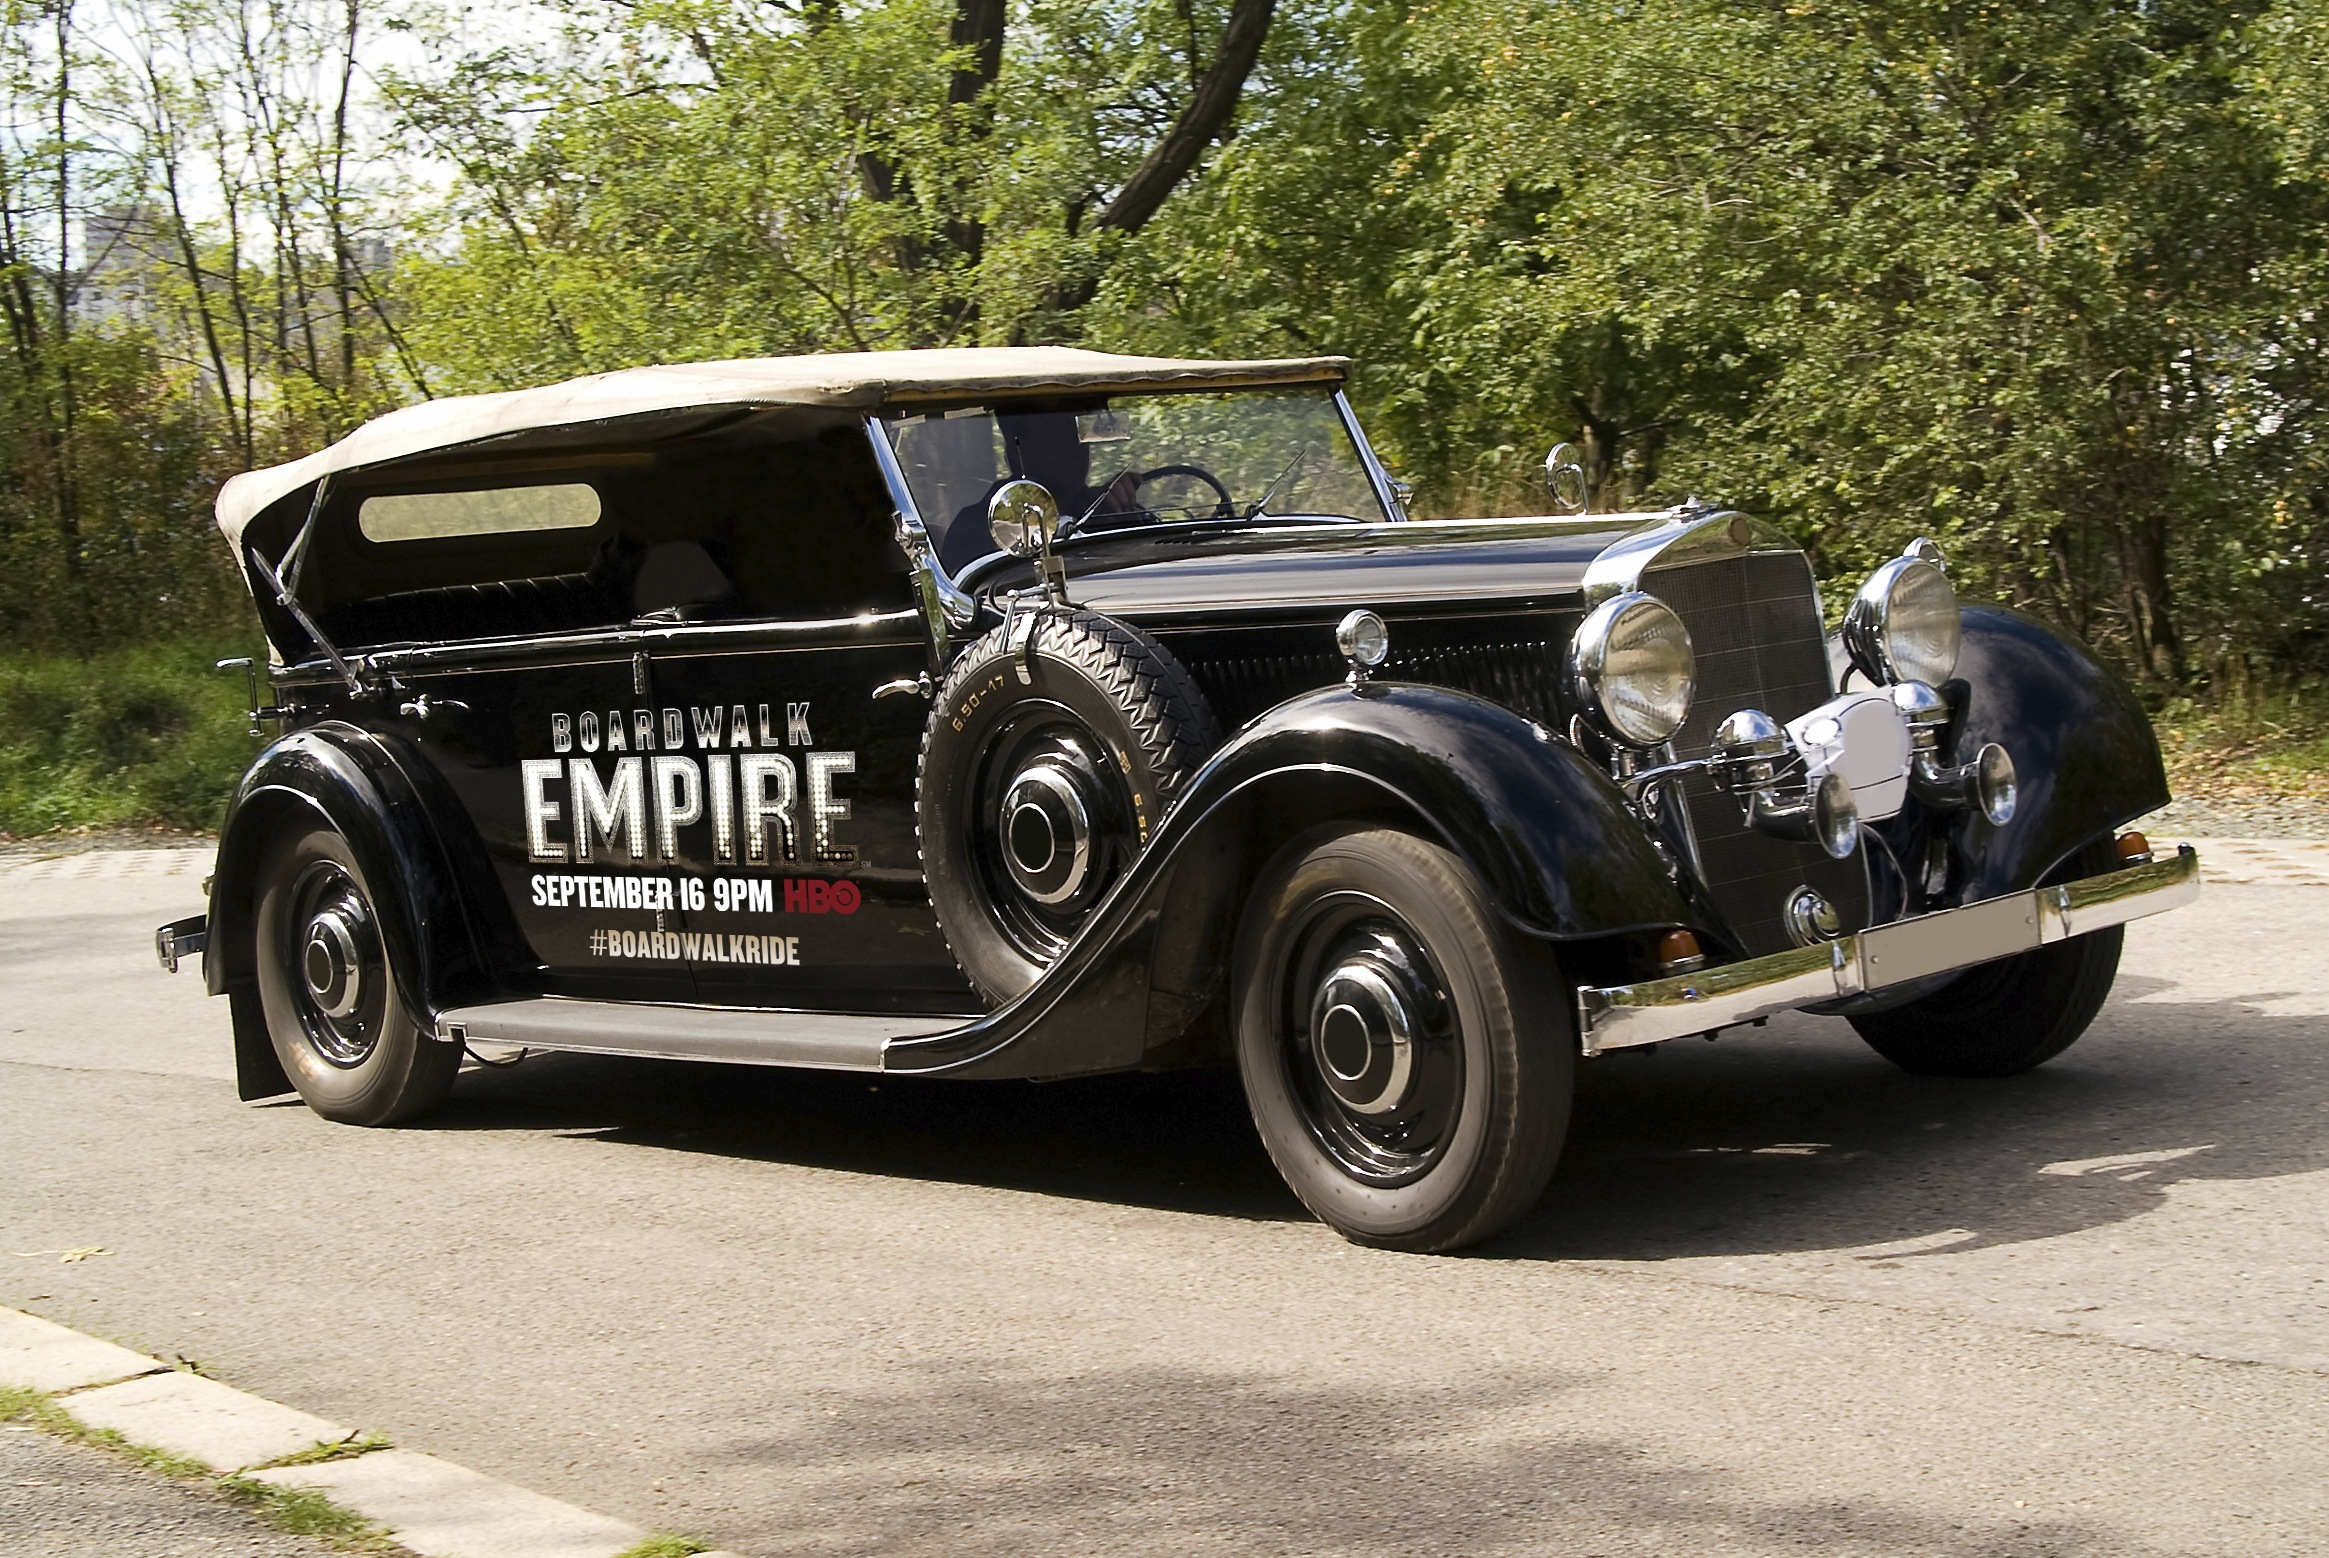 Boardwalk Empire Offers Taxi Rides In 1920s Vehicles